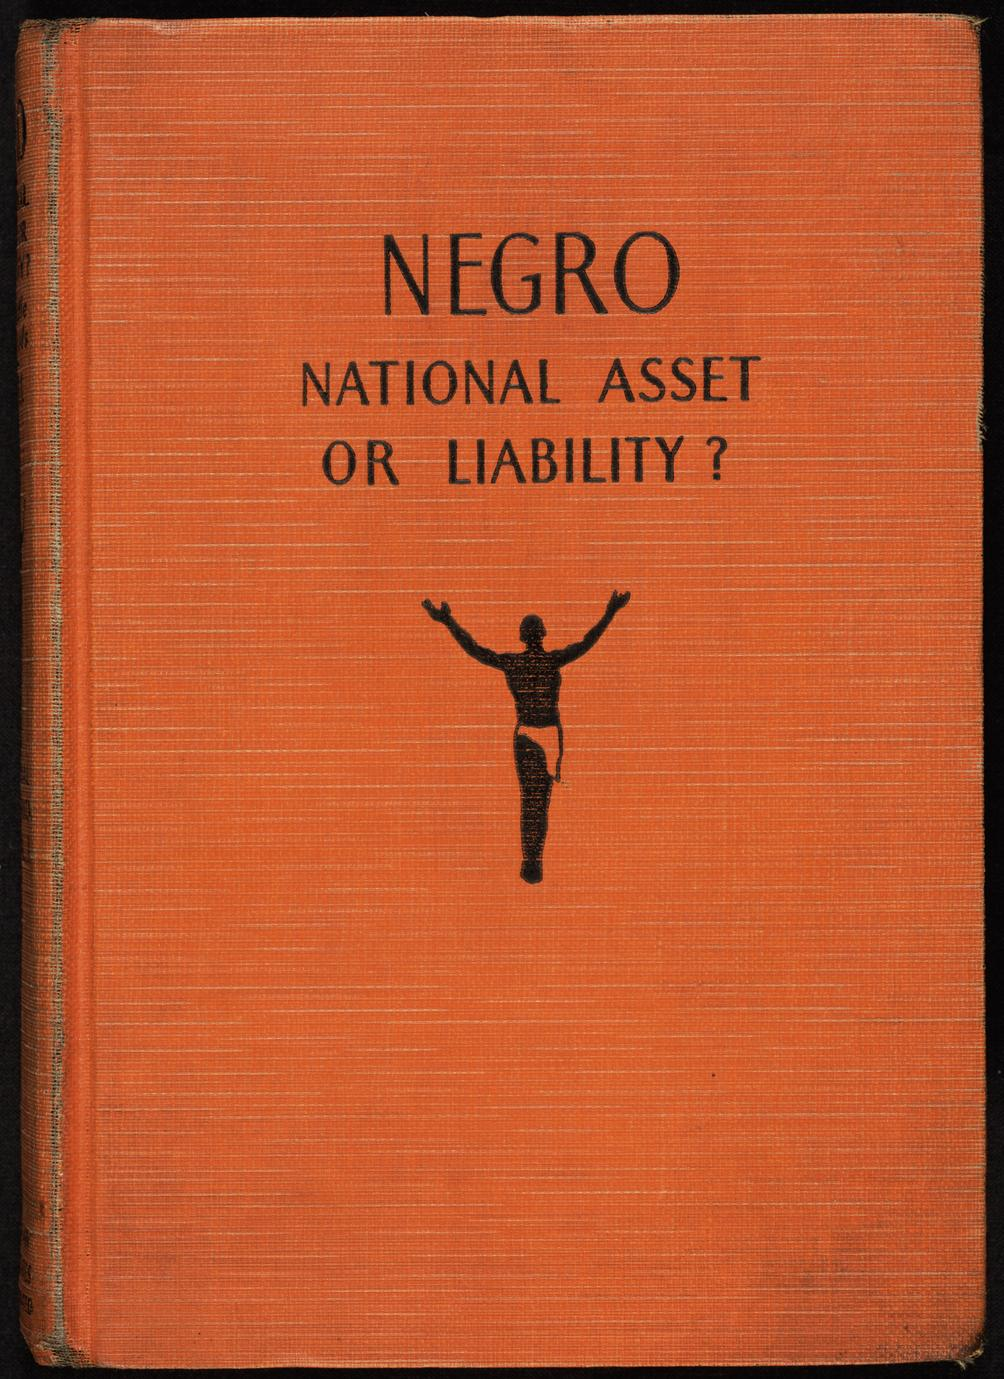 Negro : national asset or liability (1 of 2)